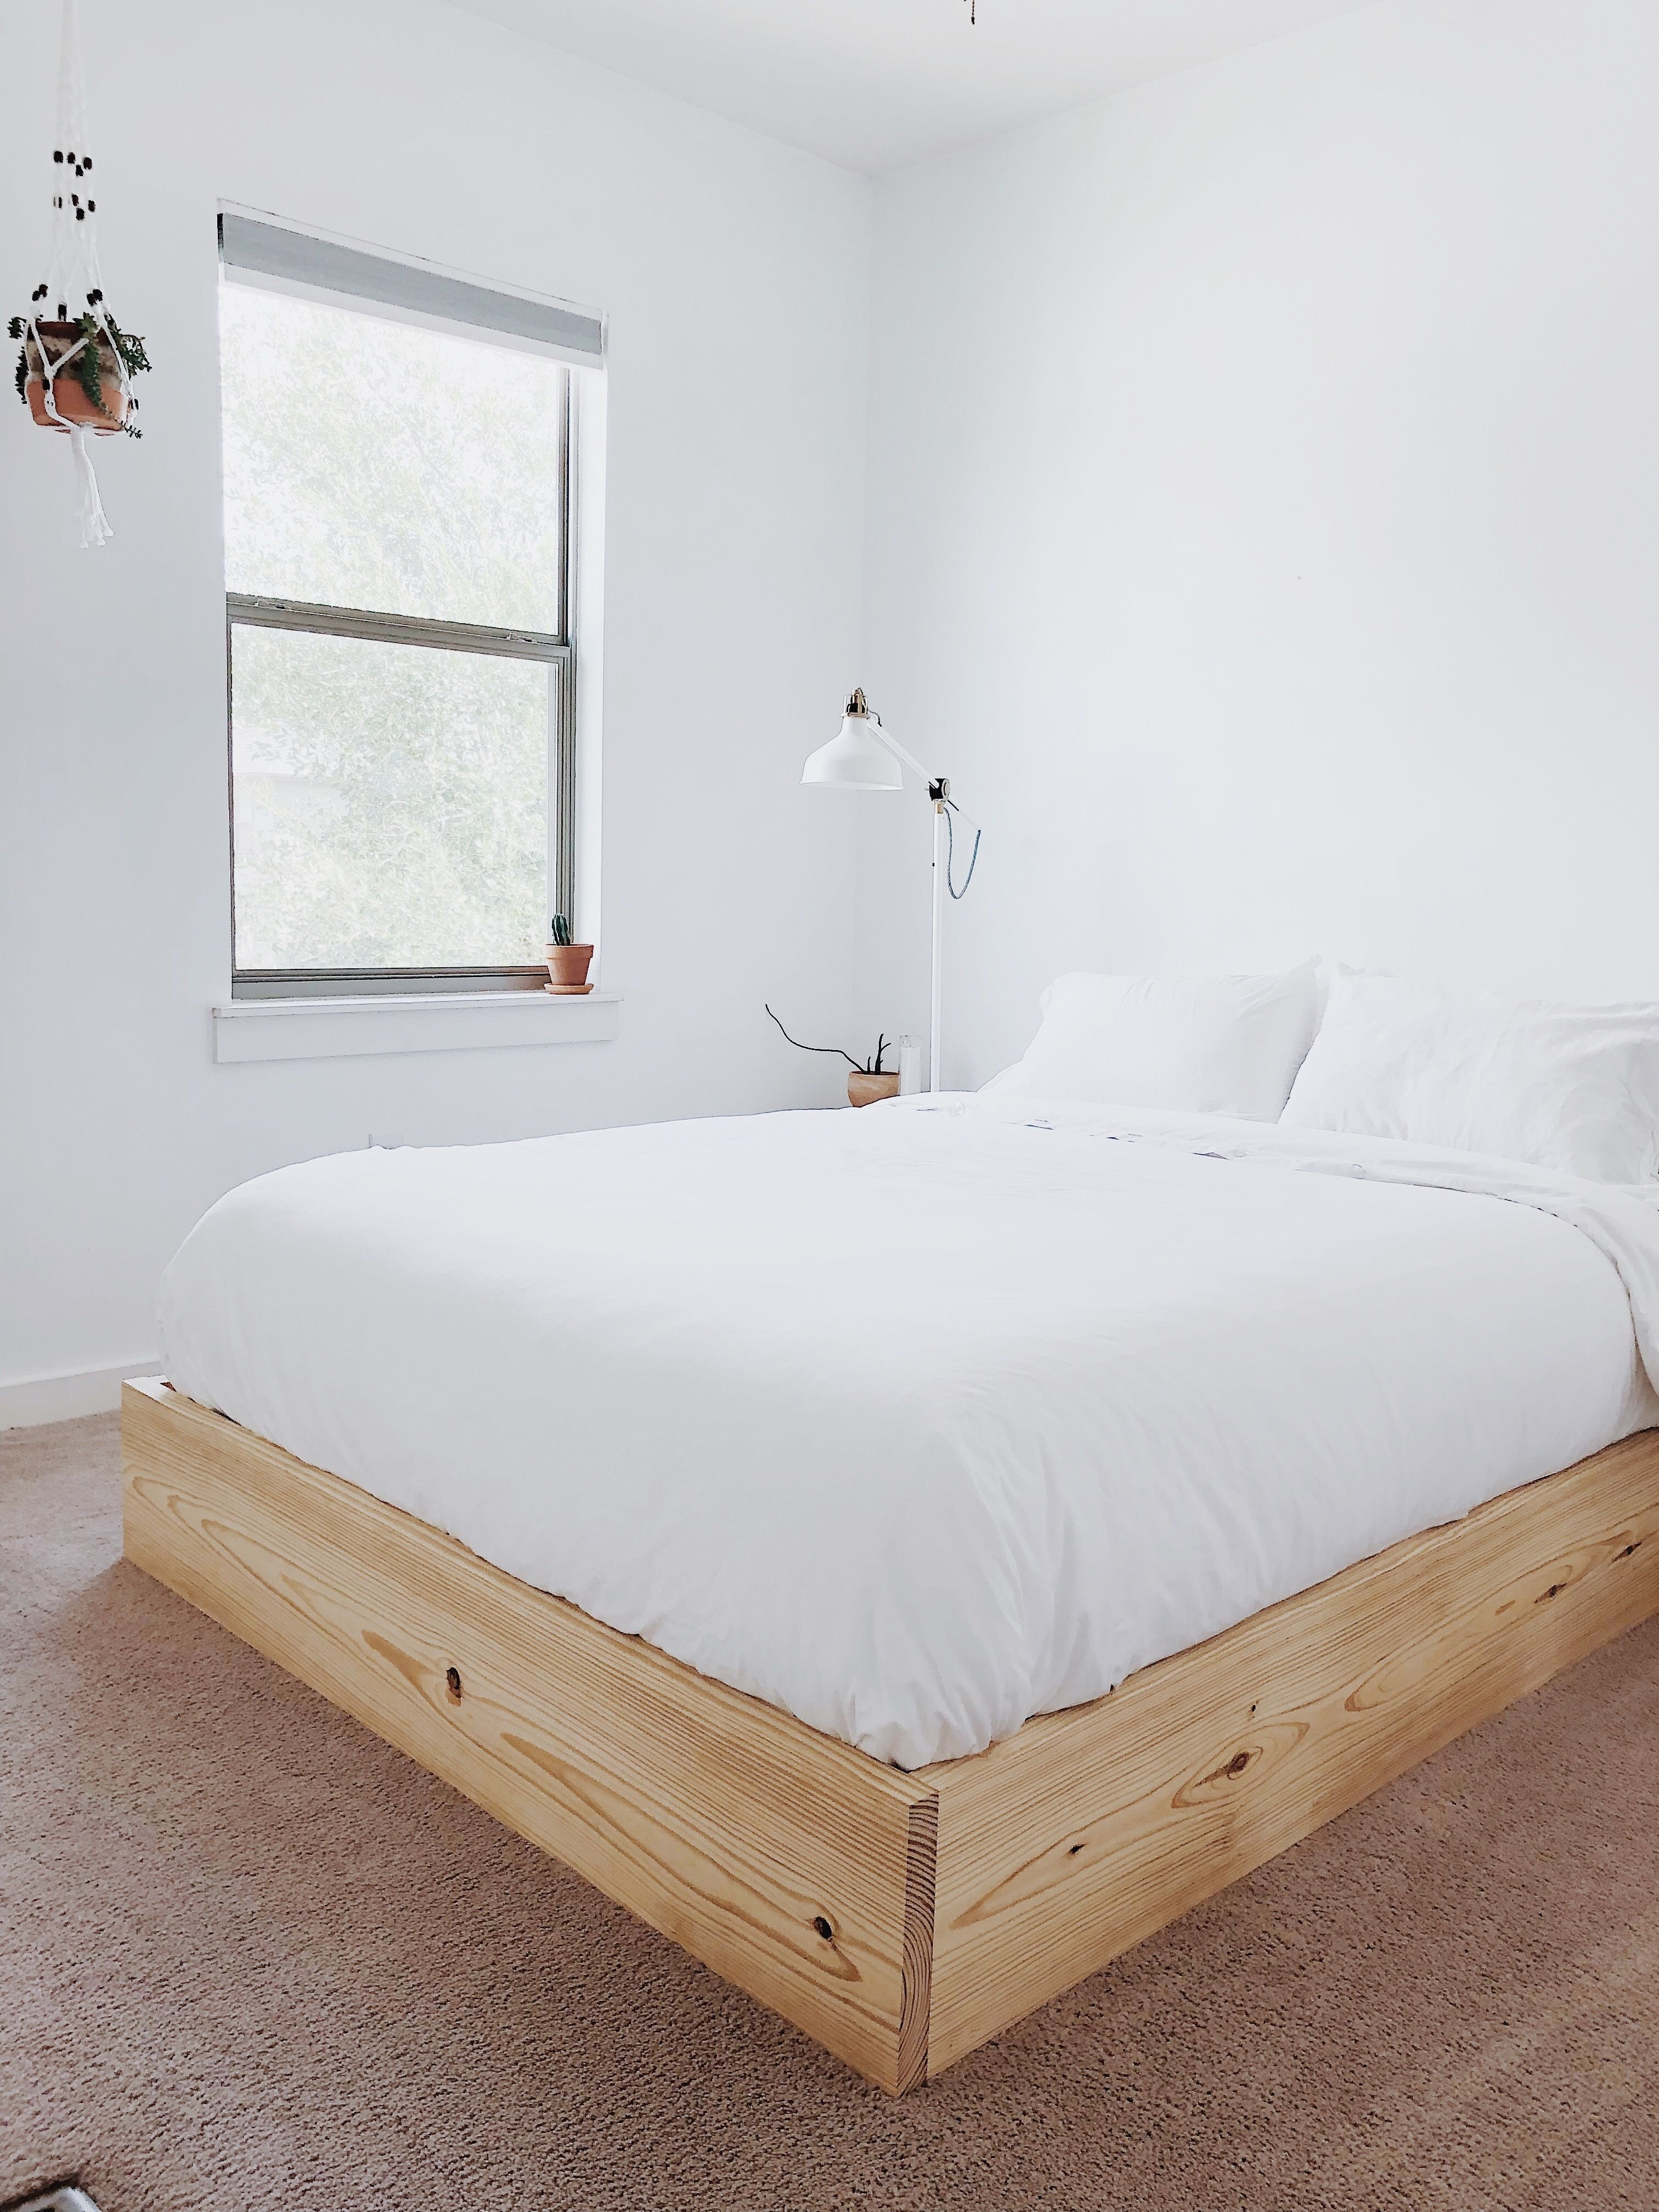 How To Build An Easy Bed Platform Maker Gray Diy Platform Bed Frame Simple Bed Diy Bed Frame Easy